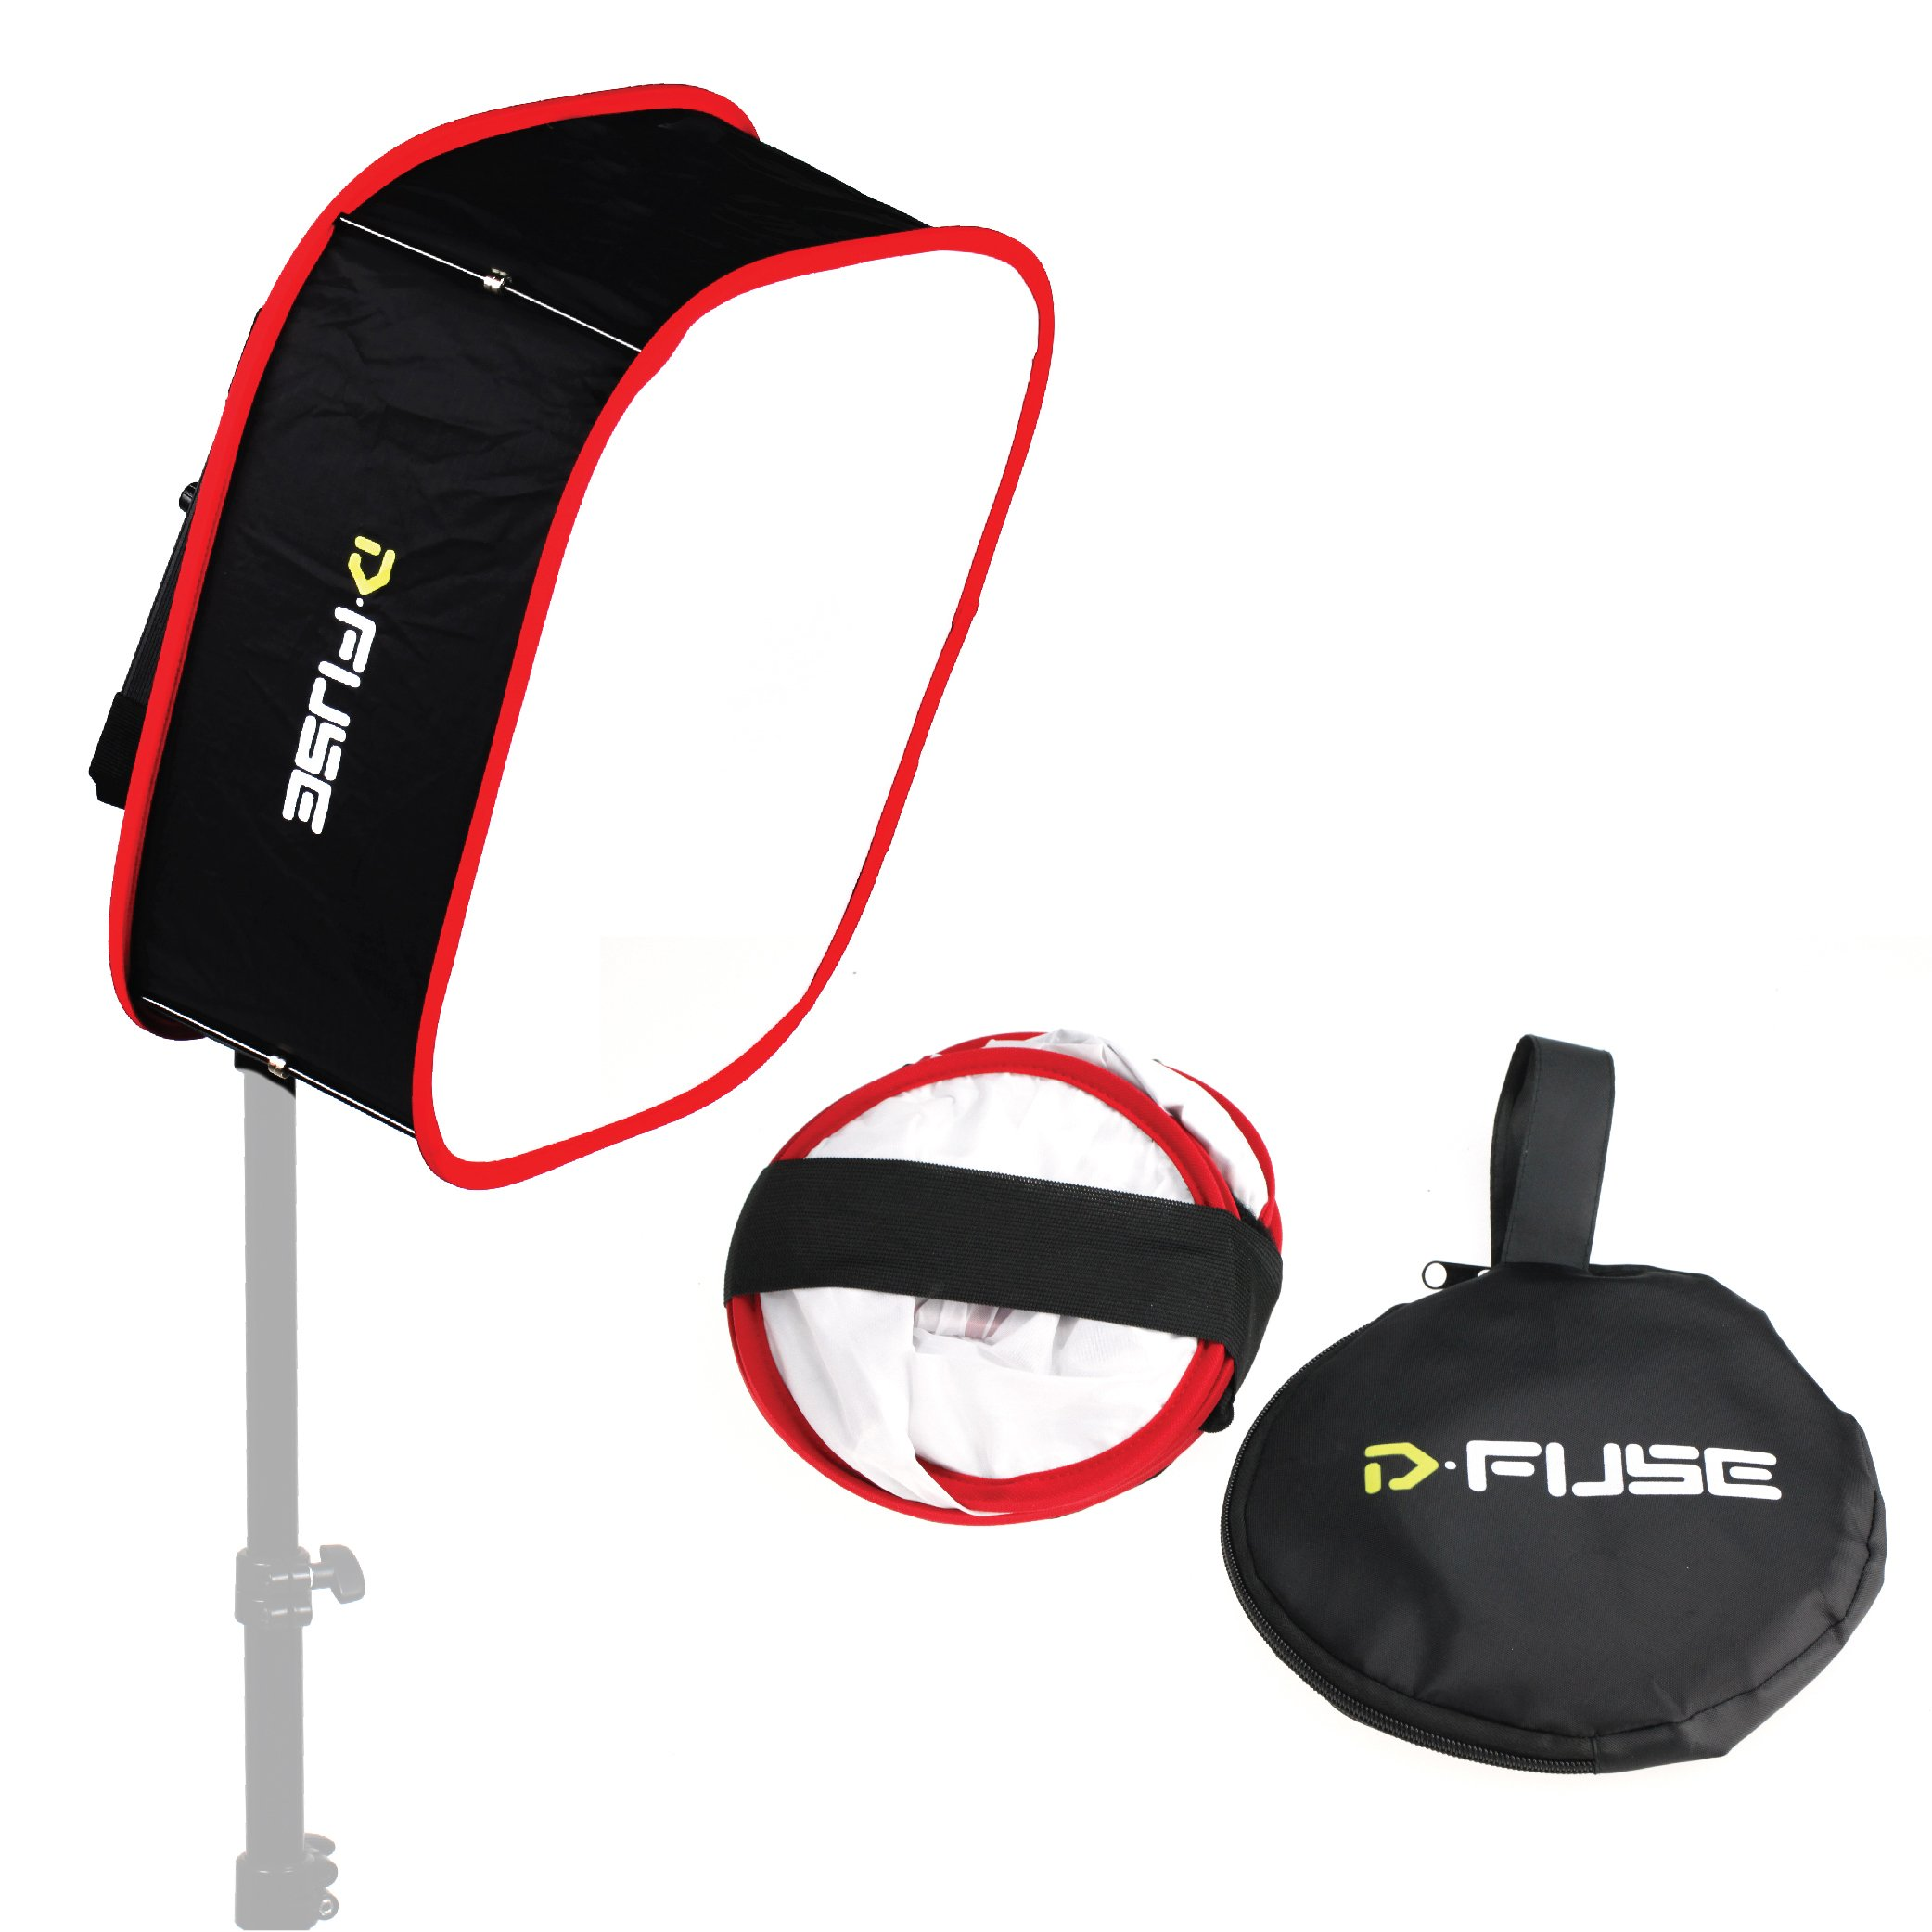 Kamerar D-Fuse Large LED Light Panel Softbox: 12''x12'' Opening, Foldable, Portable Diffuser, Carrying Bag, Strap Attachment, Photography, Photo Video